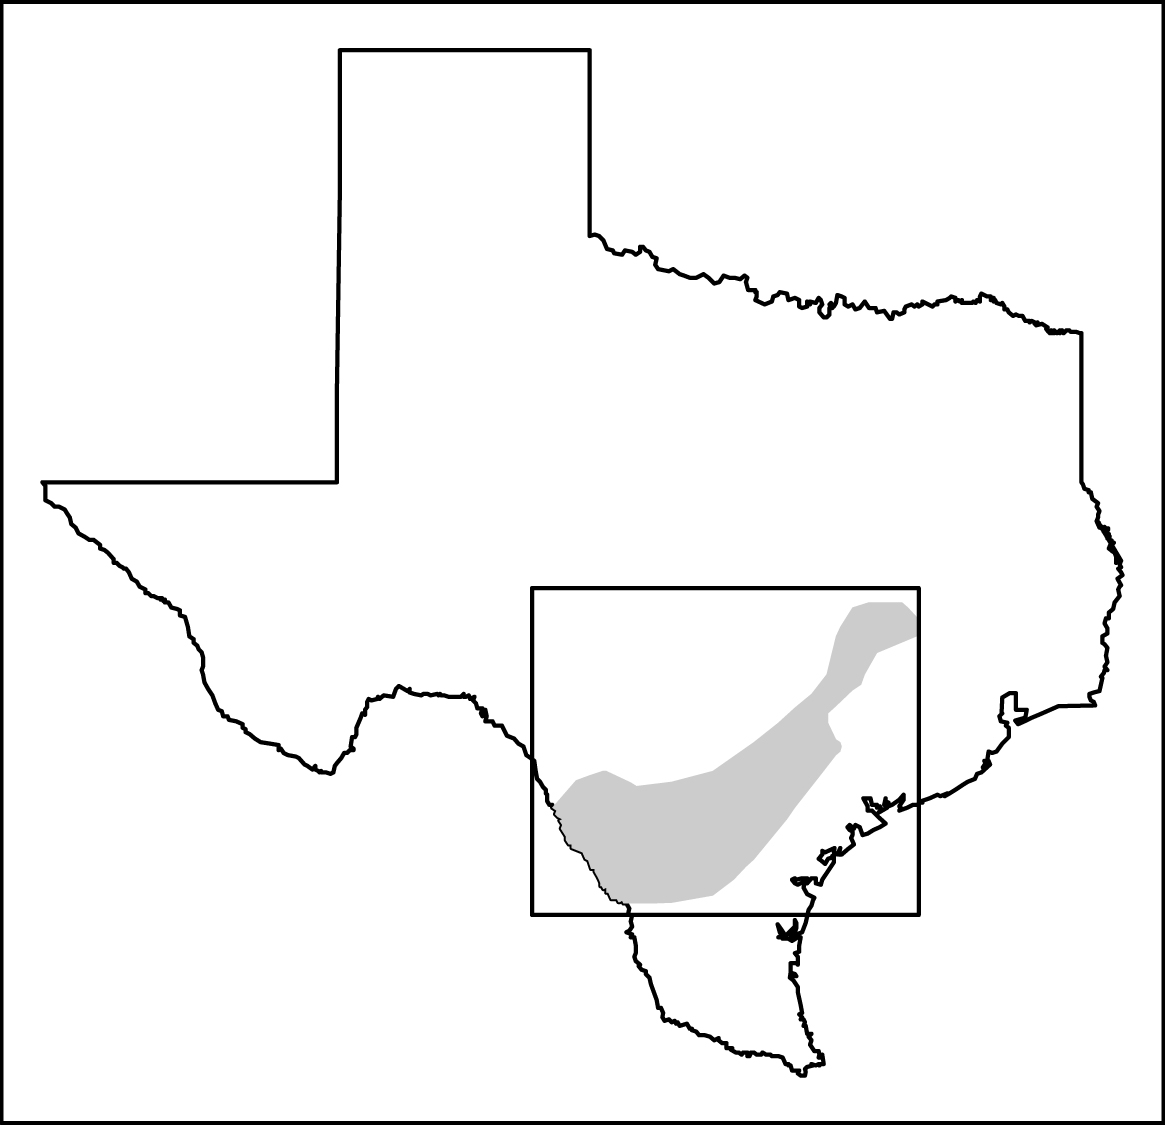 Small Earthquakes in the Eagle Ford Region of Texas